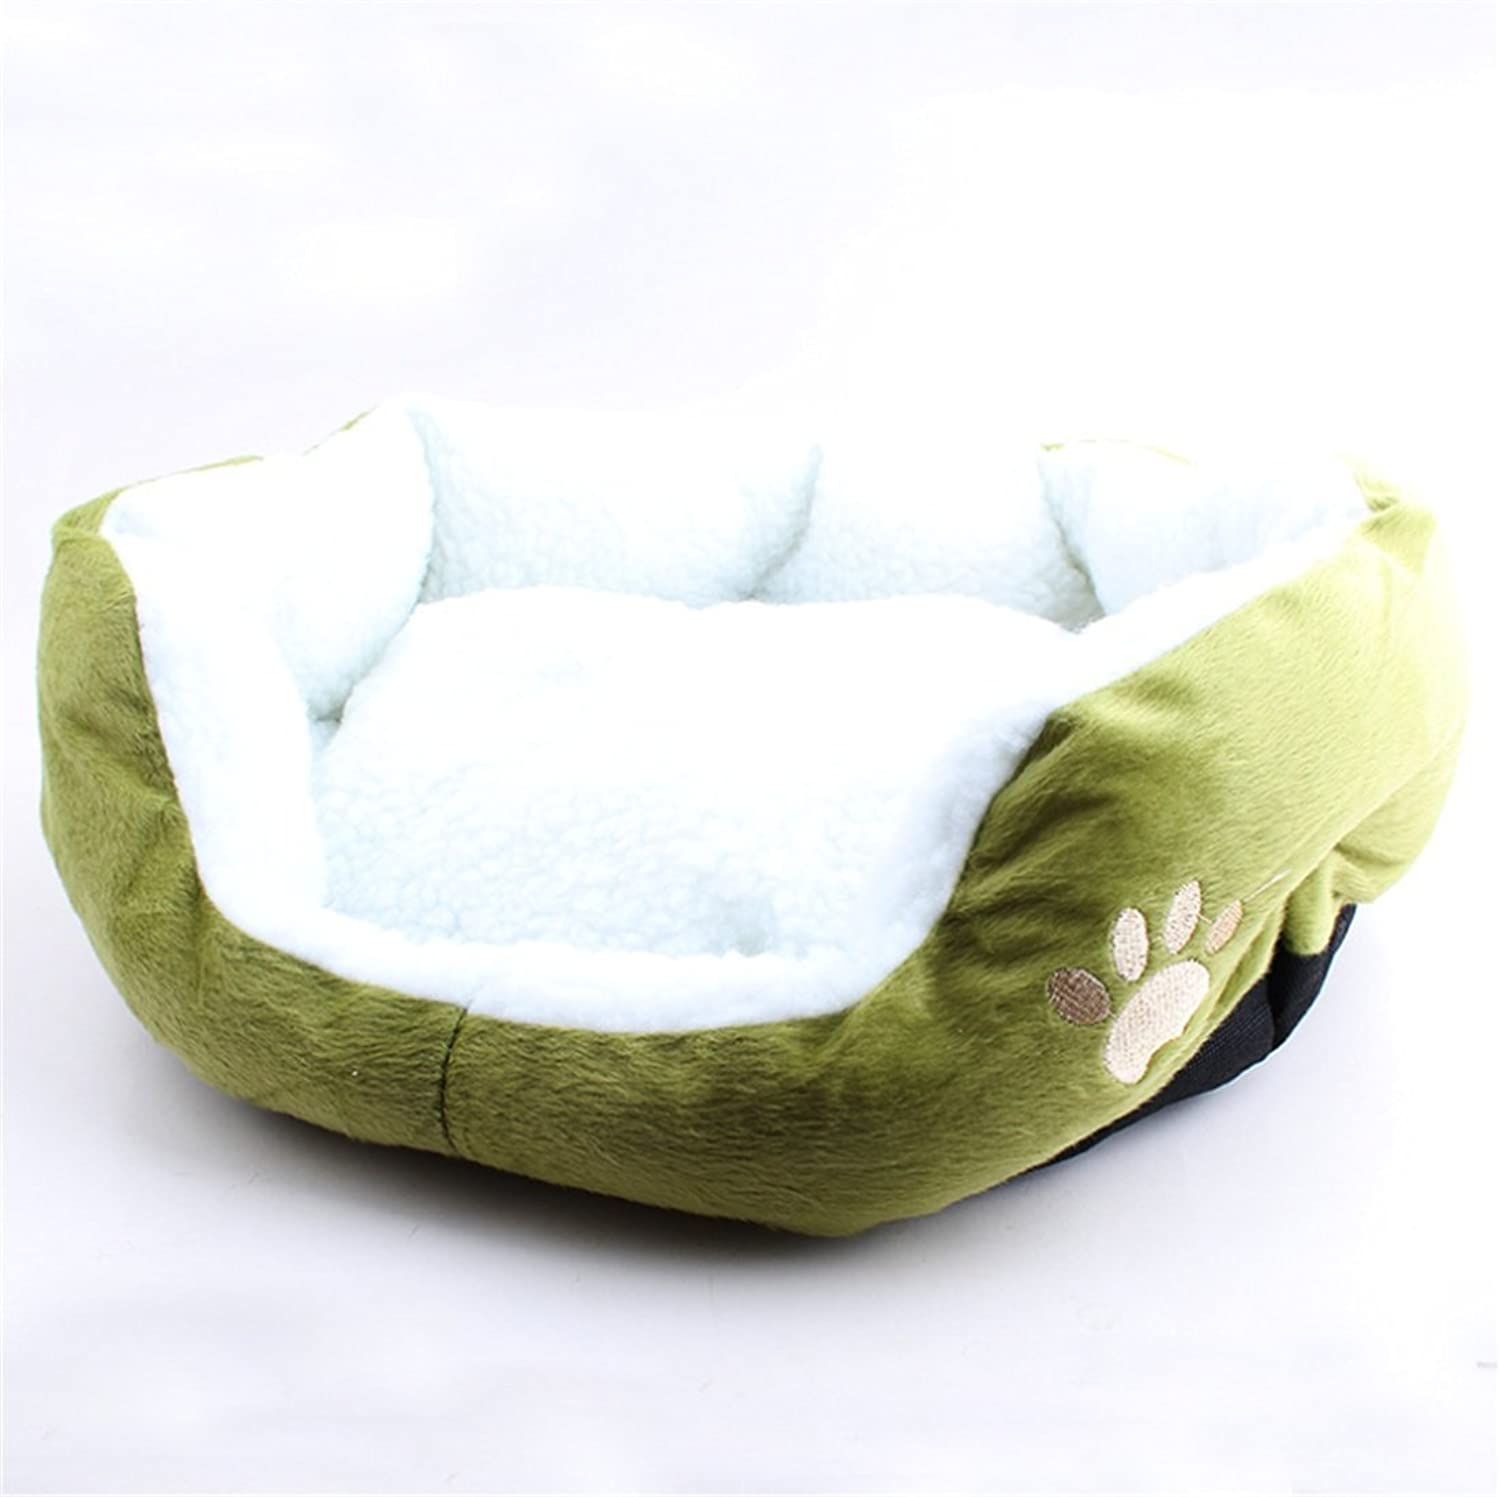 CHWWO Lamb Cashmere Kennel Small Dog Pet Supplies Soft and Comfortable Deep Sleeping Ideal Bed 50  40  12cm, Green